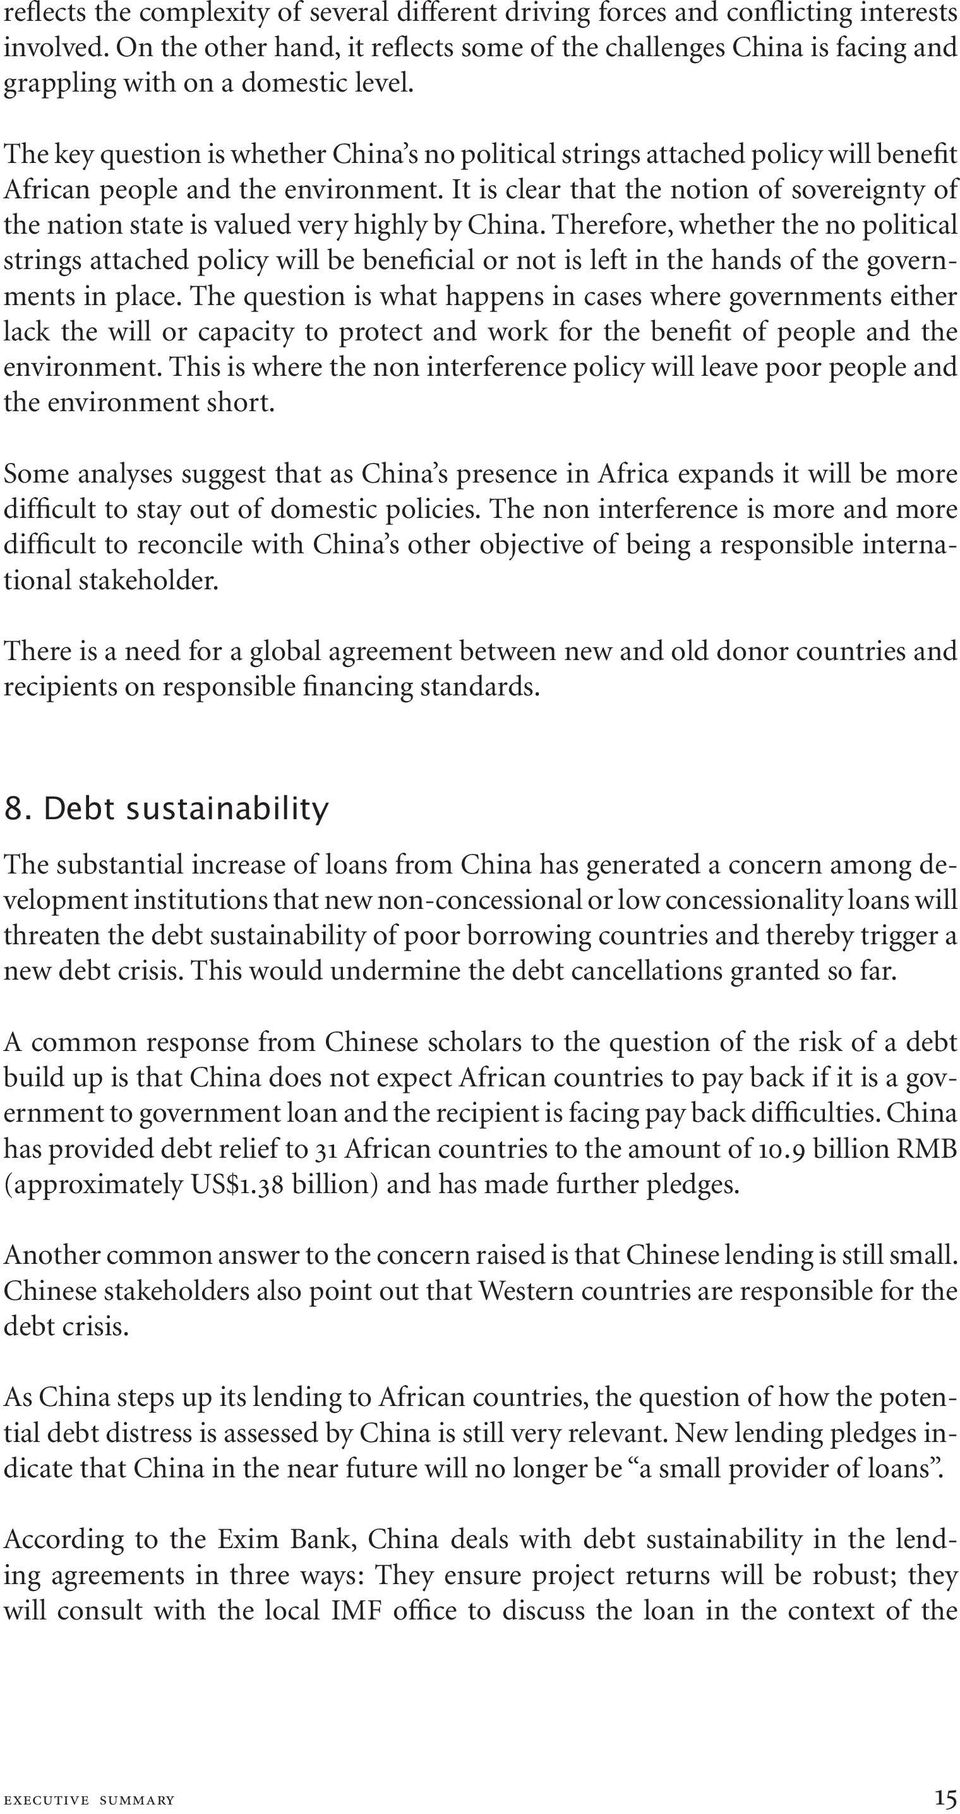 The key question is whether China s no political strings attached policy will benefit African people and the environment.